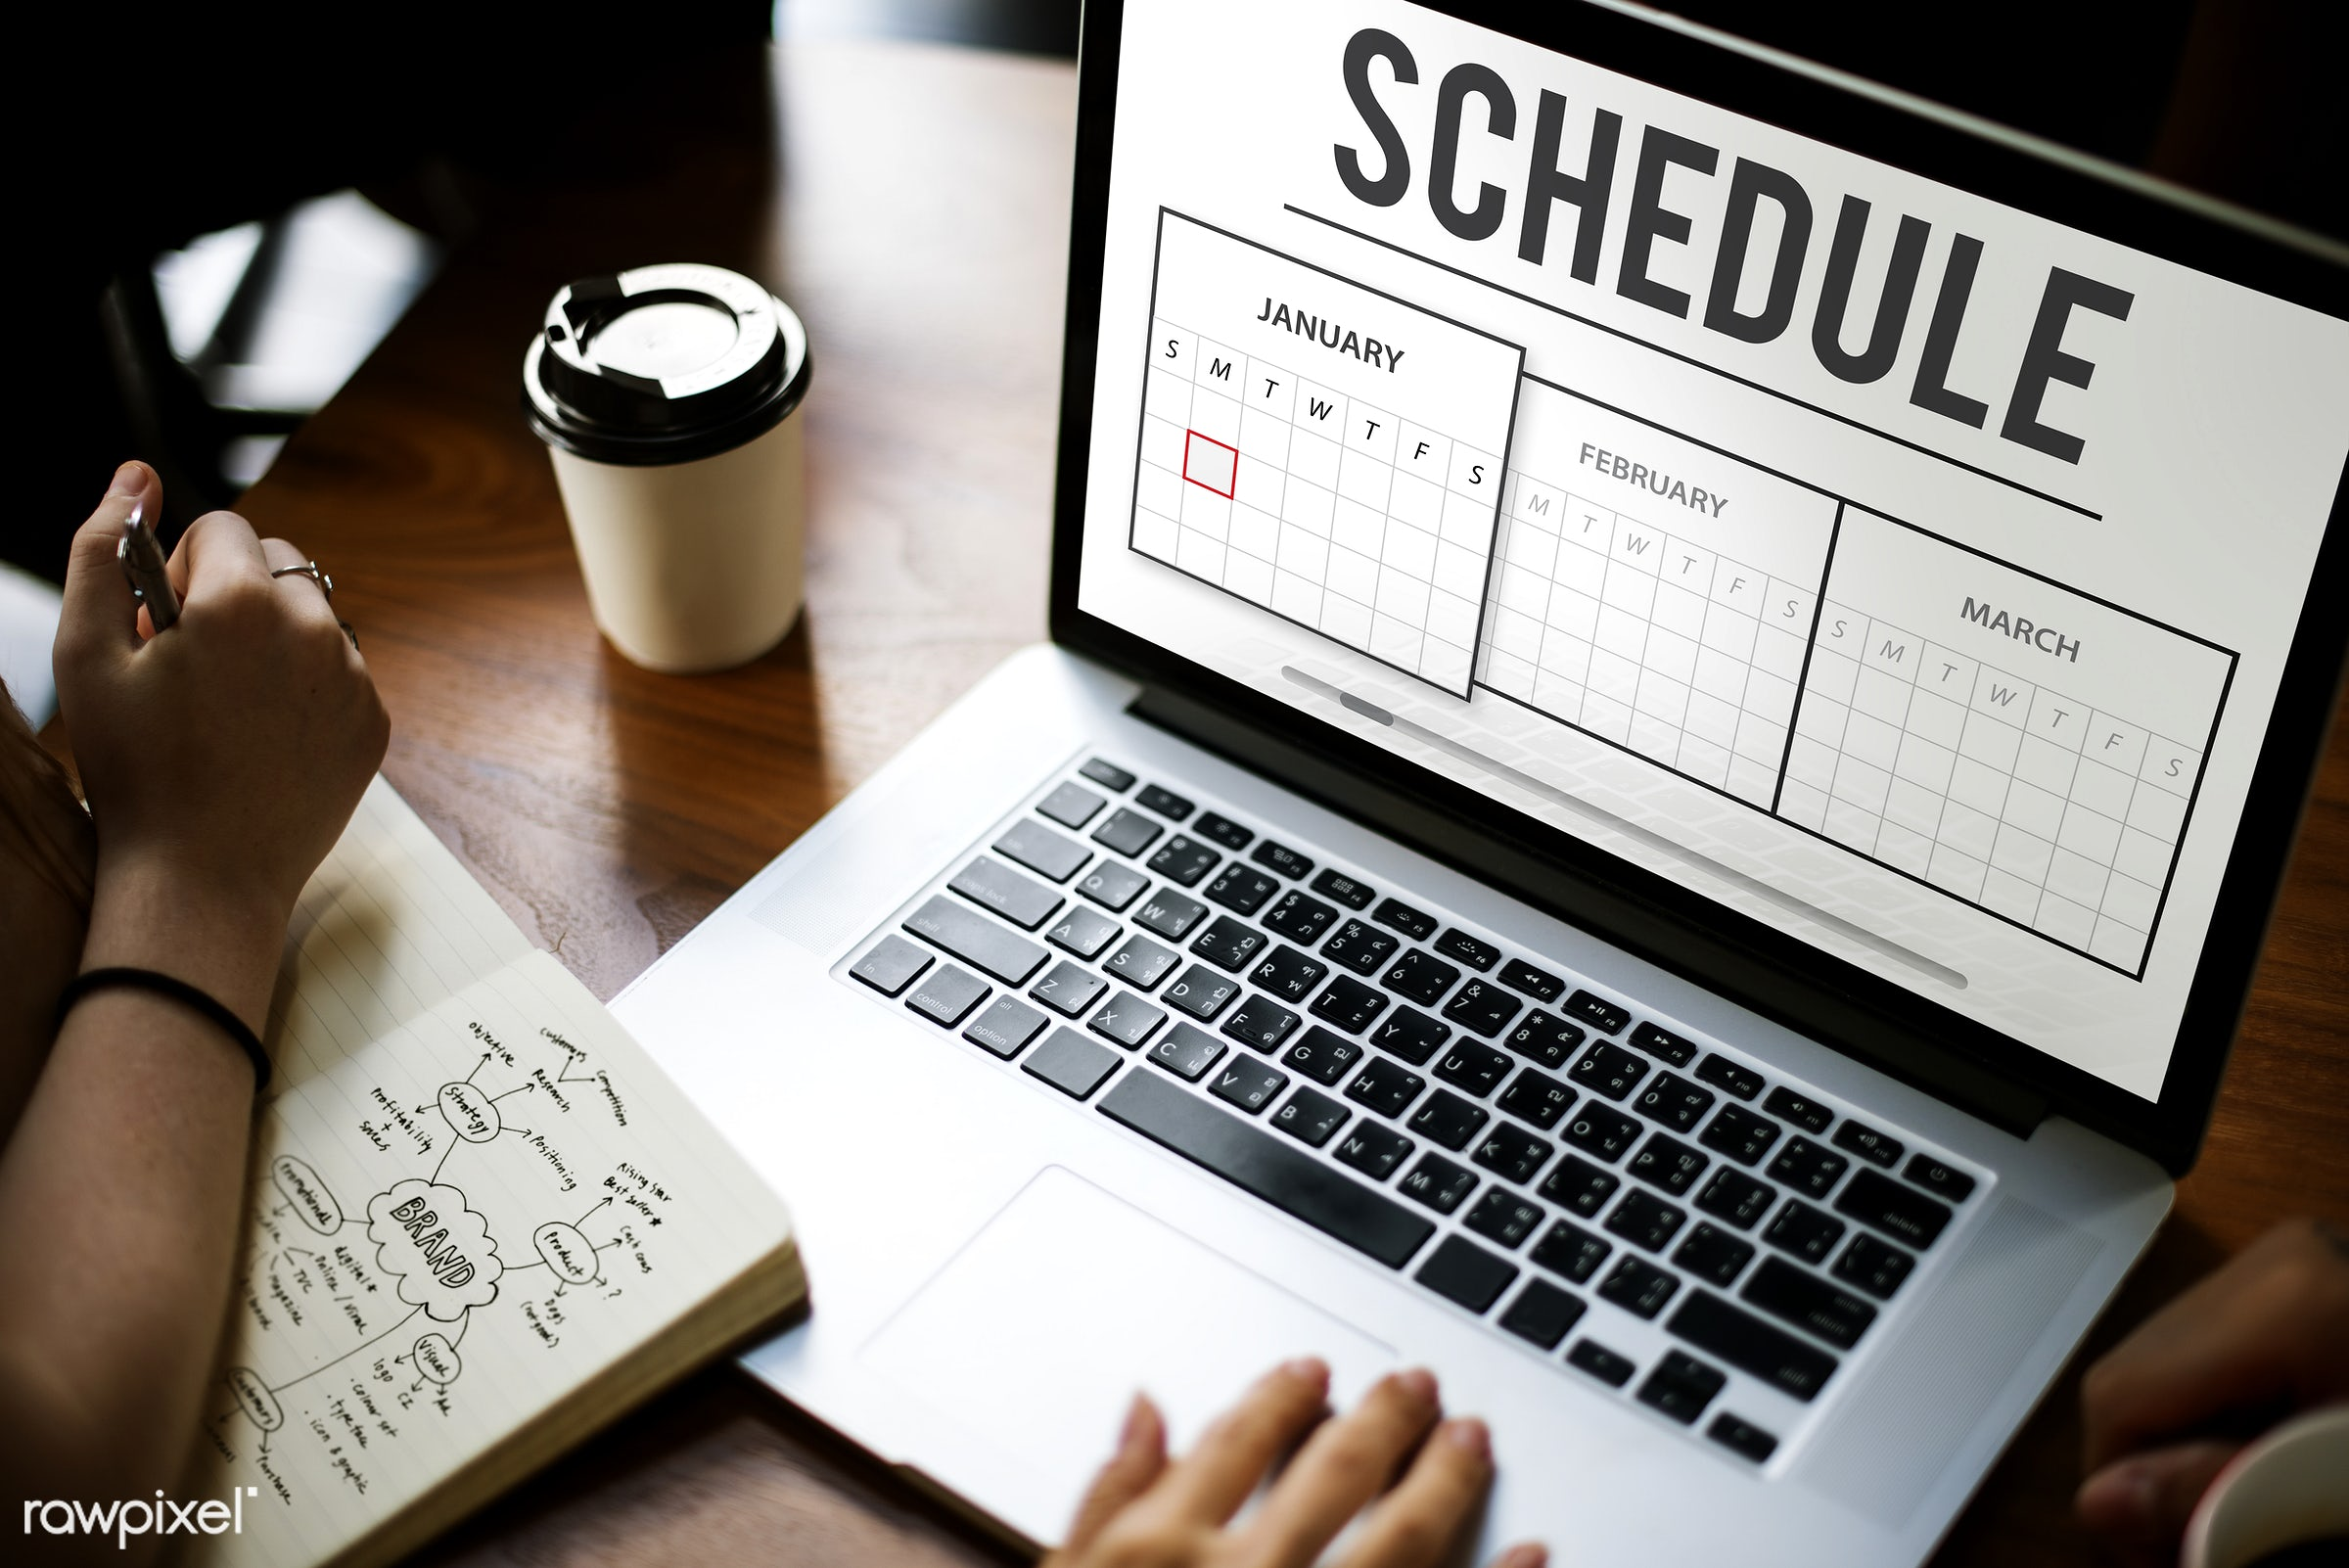 schedule, agenda, appointment, browsing, calendar, coffee cup, daily, date, deadline, device, digital, digital device,...